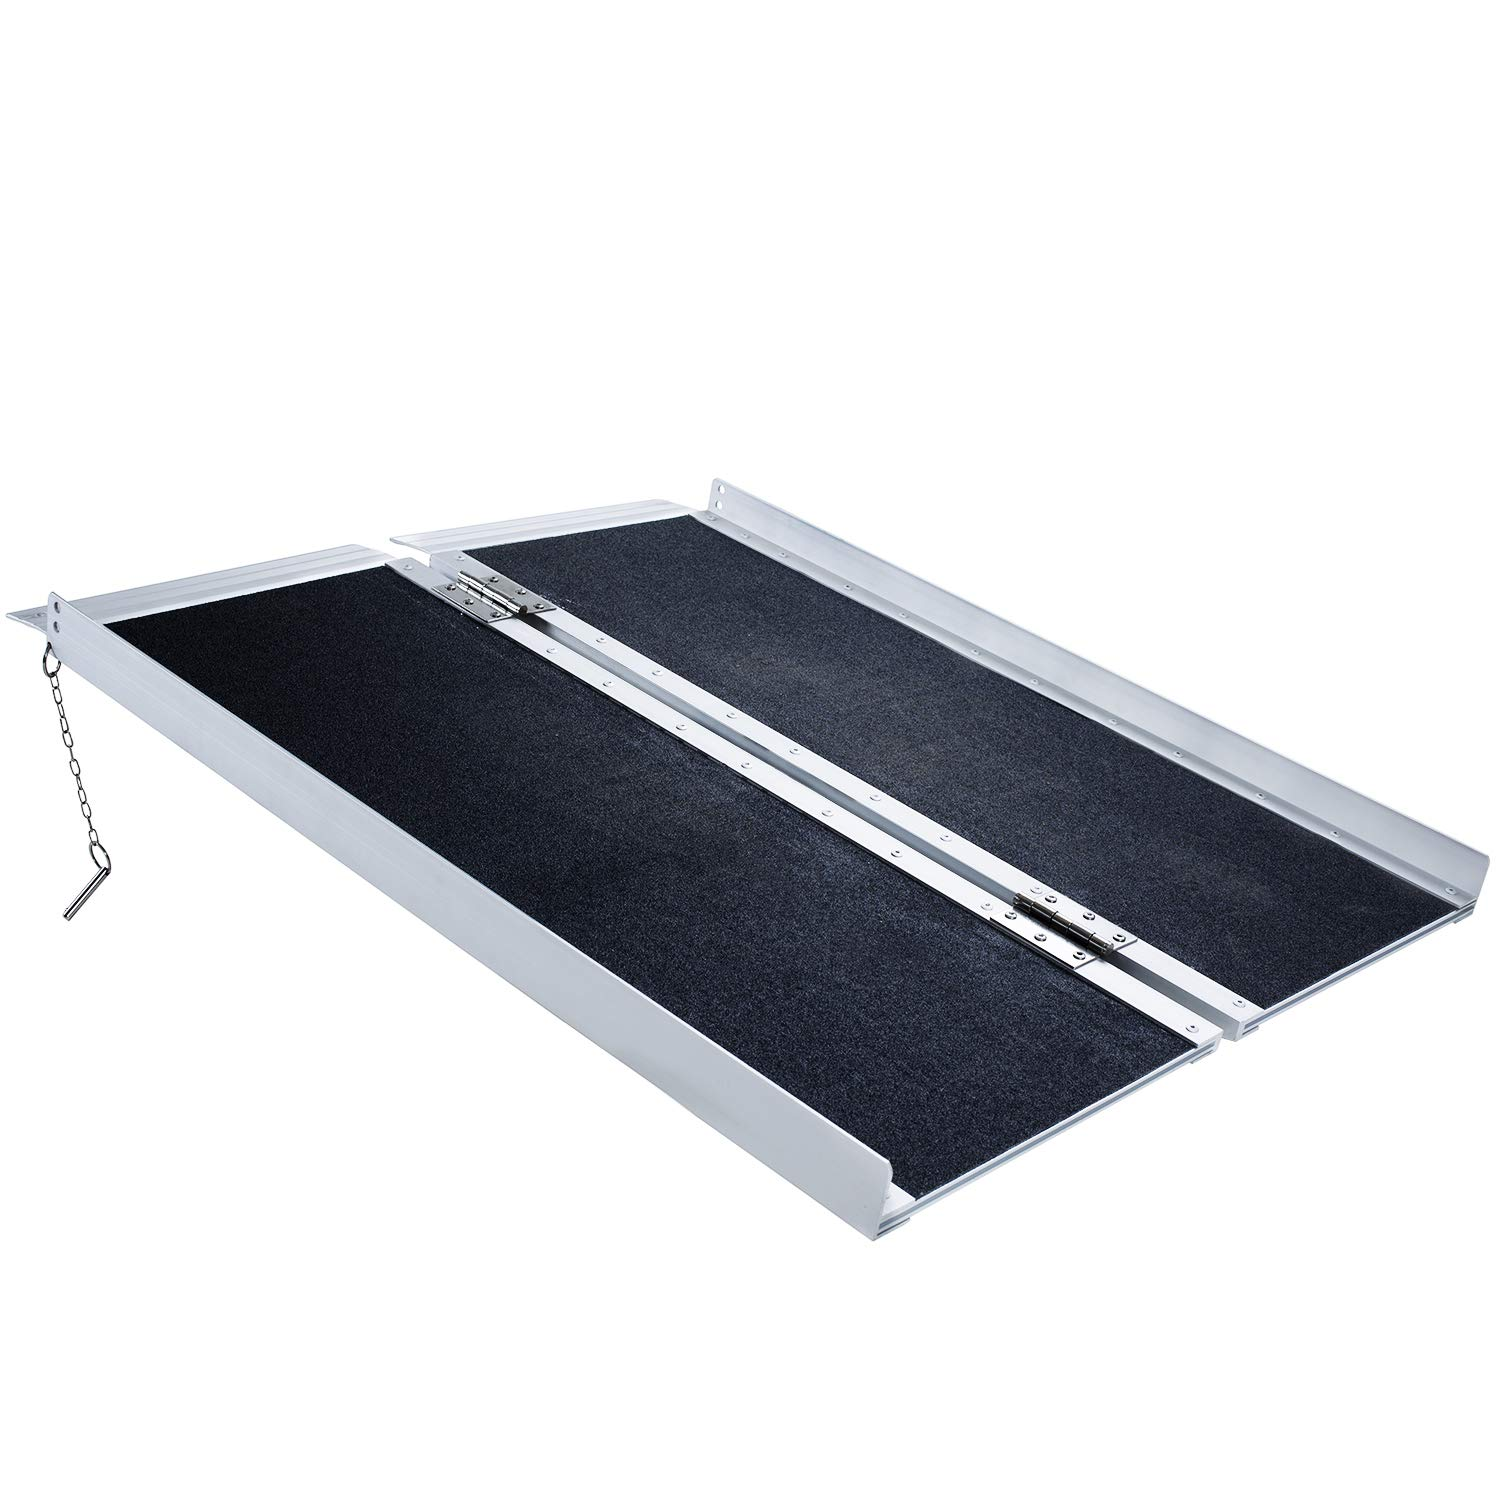 Wheelchair Ramp 3'',Ramps for Wheelchair,Portable Aluminum Ramp,Wheelchair Scooter Threshold Ramp,Lightweight Folding Loading Traction Ramp,Slip Resistant Briefcase,Holds up to 600 lbs,Carrying Handle by Forfar